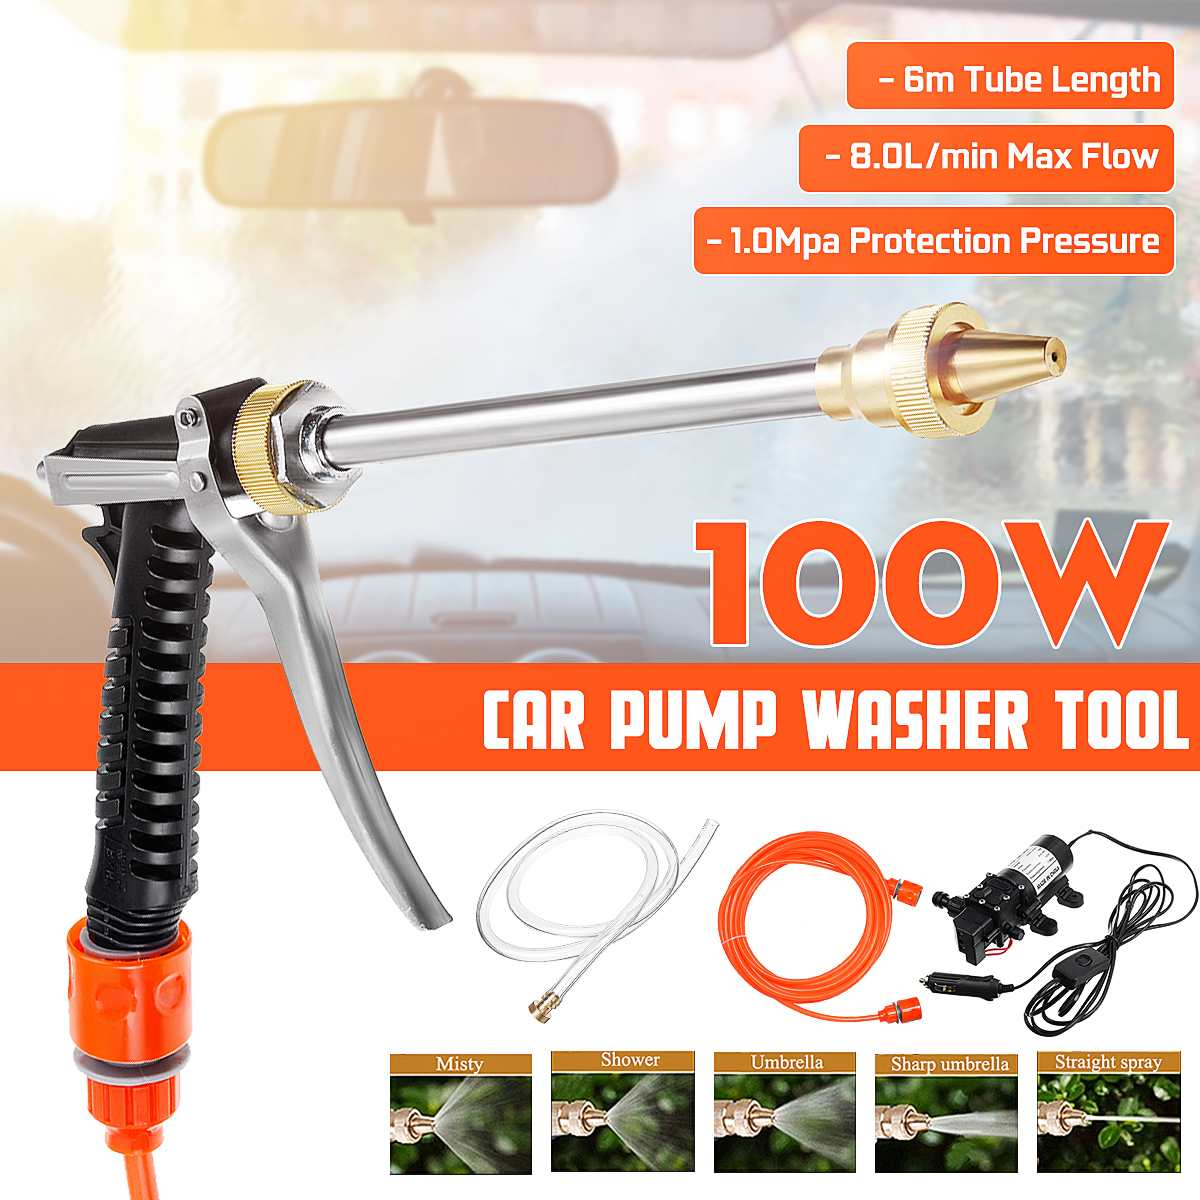 Household Car Wash Pump 100w Portable High Pressure Electric Car Wash Washer 160PSI 12V Car Washer Washing Machine